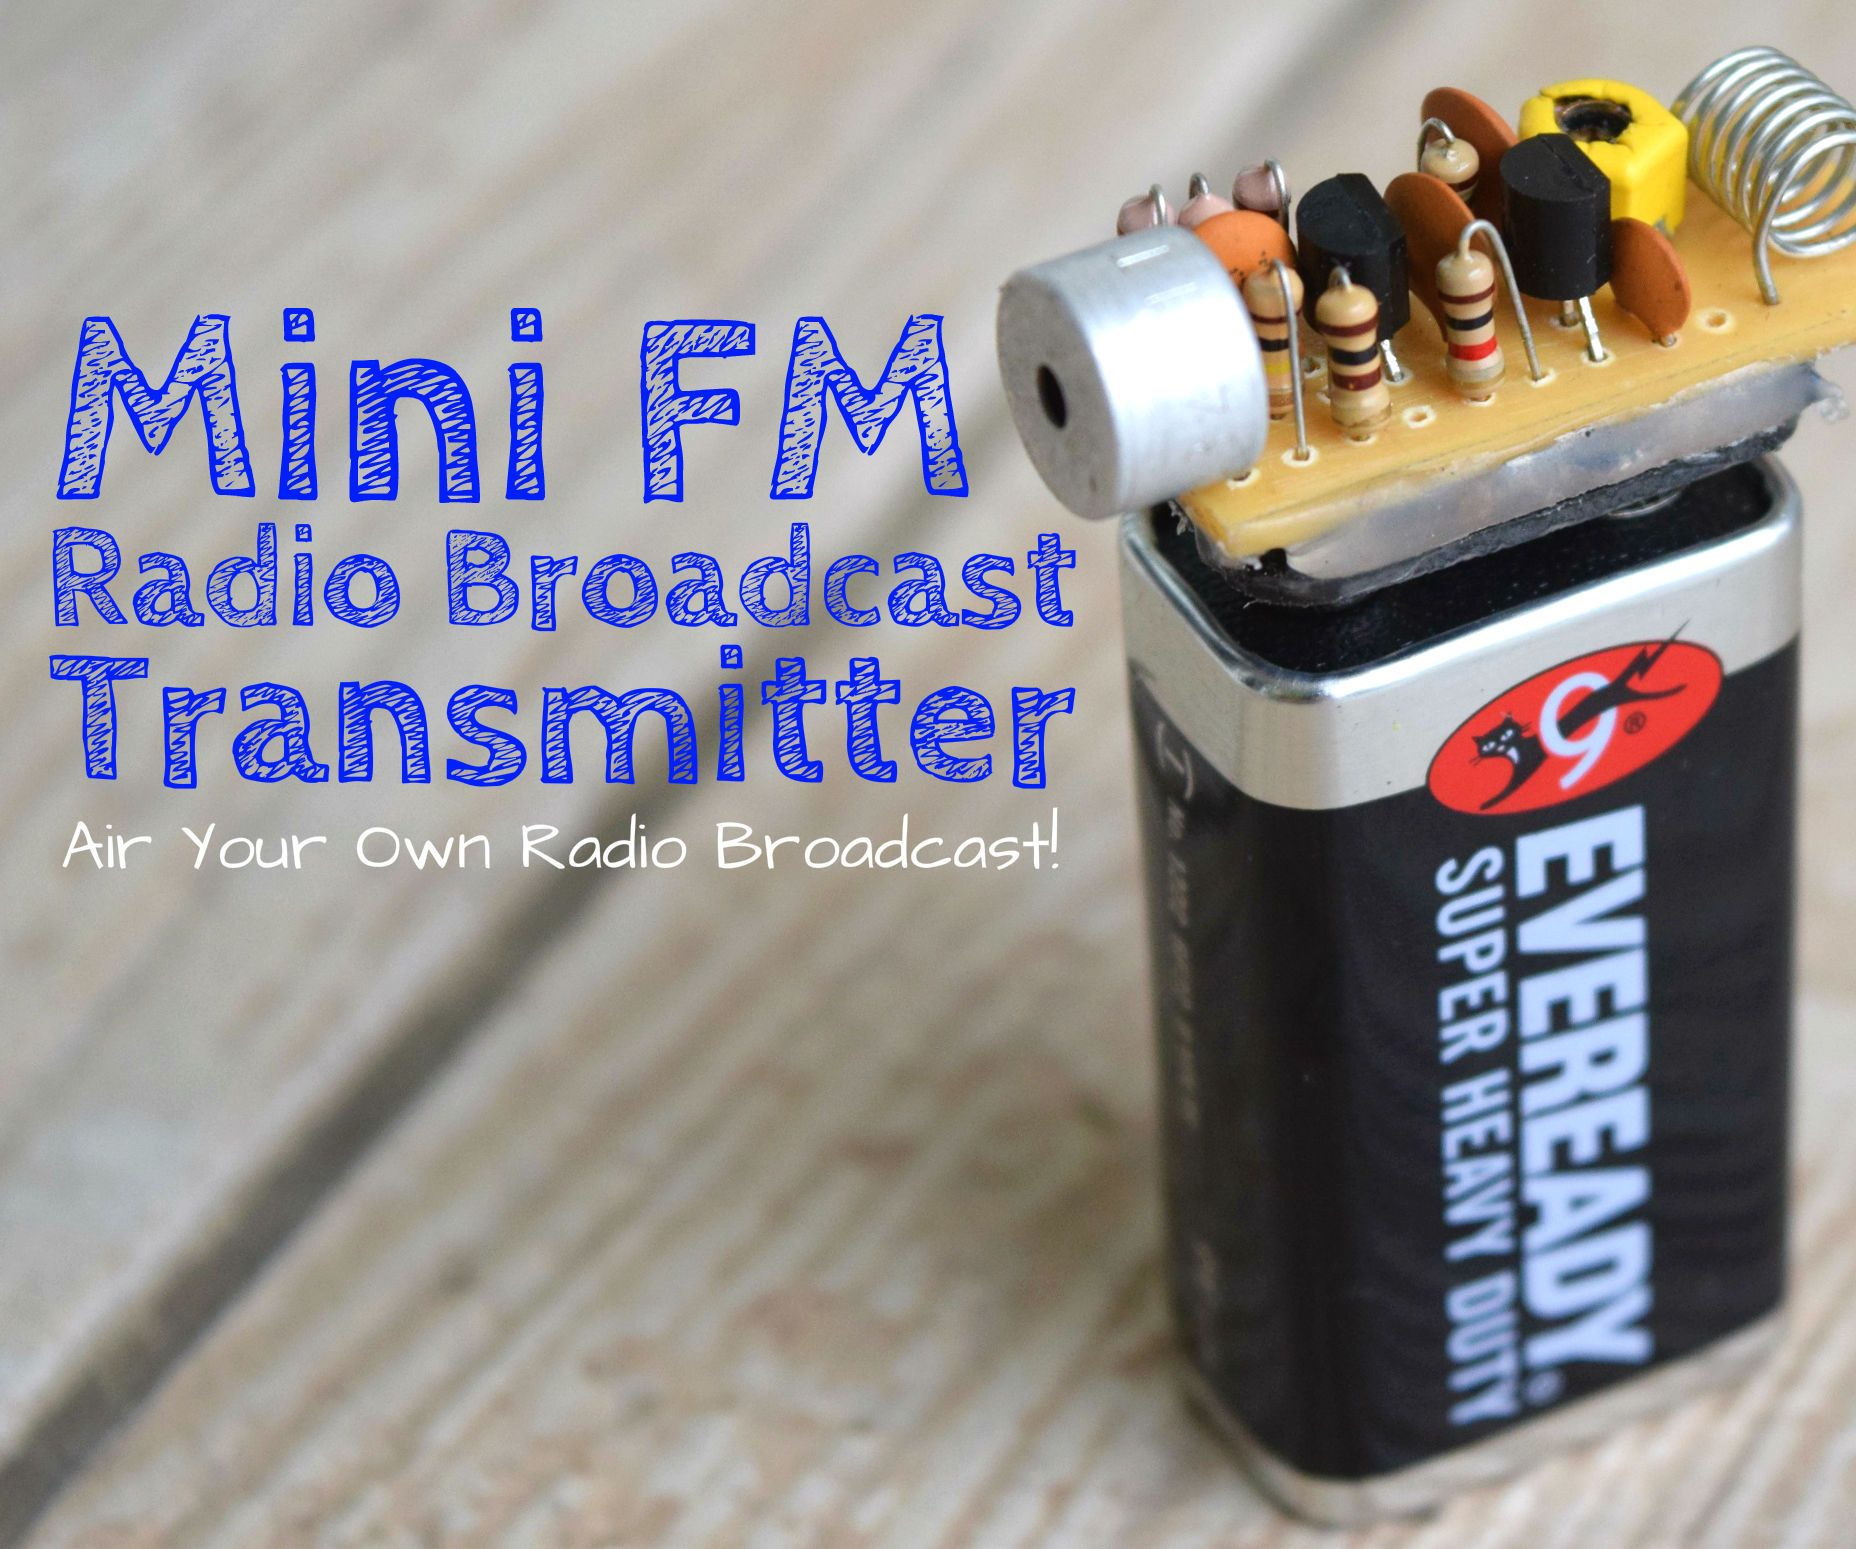 The Ultimate Fm Transmitter Long Range Spybug Relojes Electronics Projects Wireless Mic Have You Ever Wanted To Broadcast Your Own Radio Station Within Neighborhood Get Curious On Where People Those Surveillance Bugs From Spy